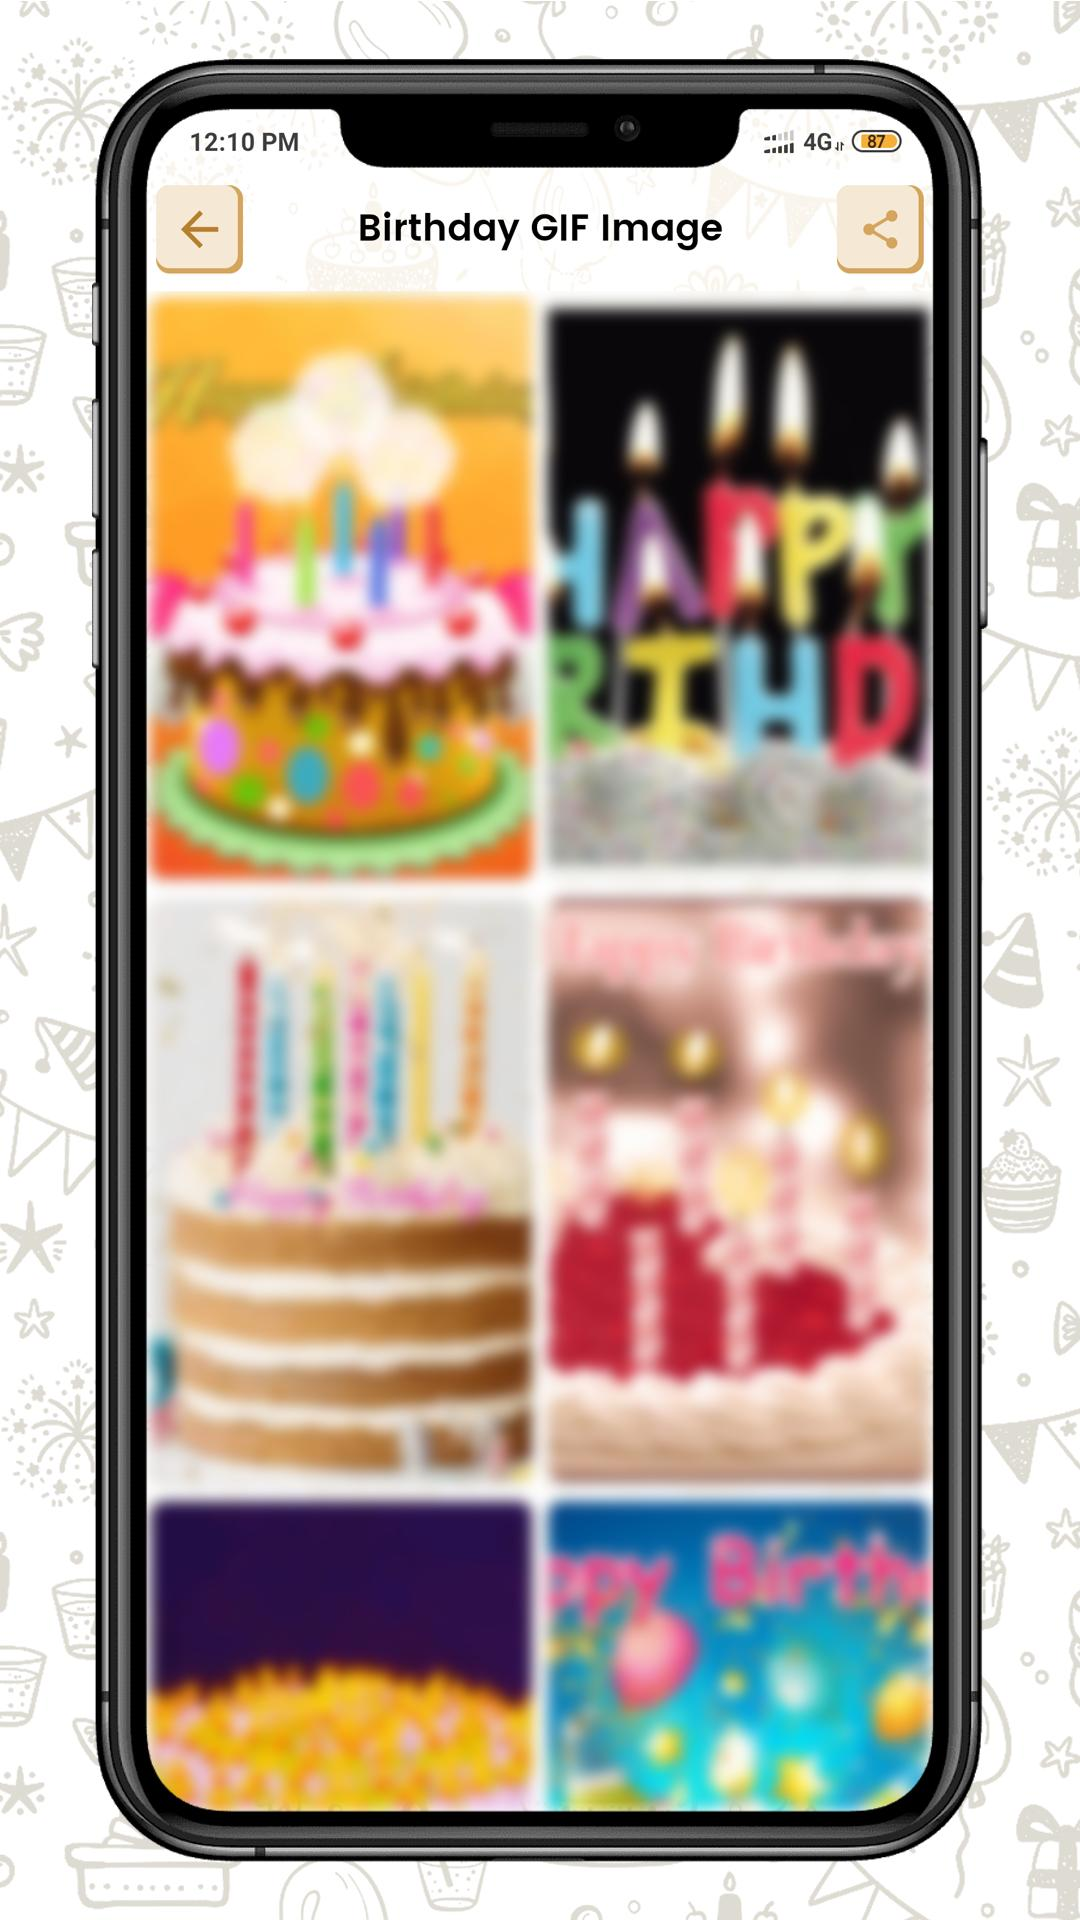 Tamil Happy Birthday Mp3 Songs For Android Apk Download